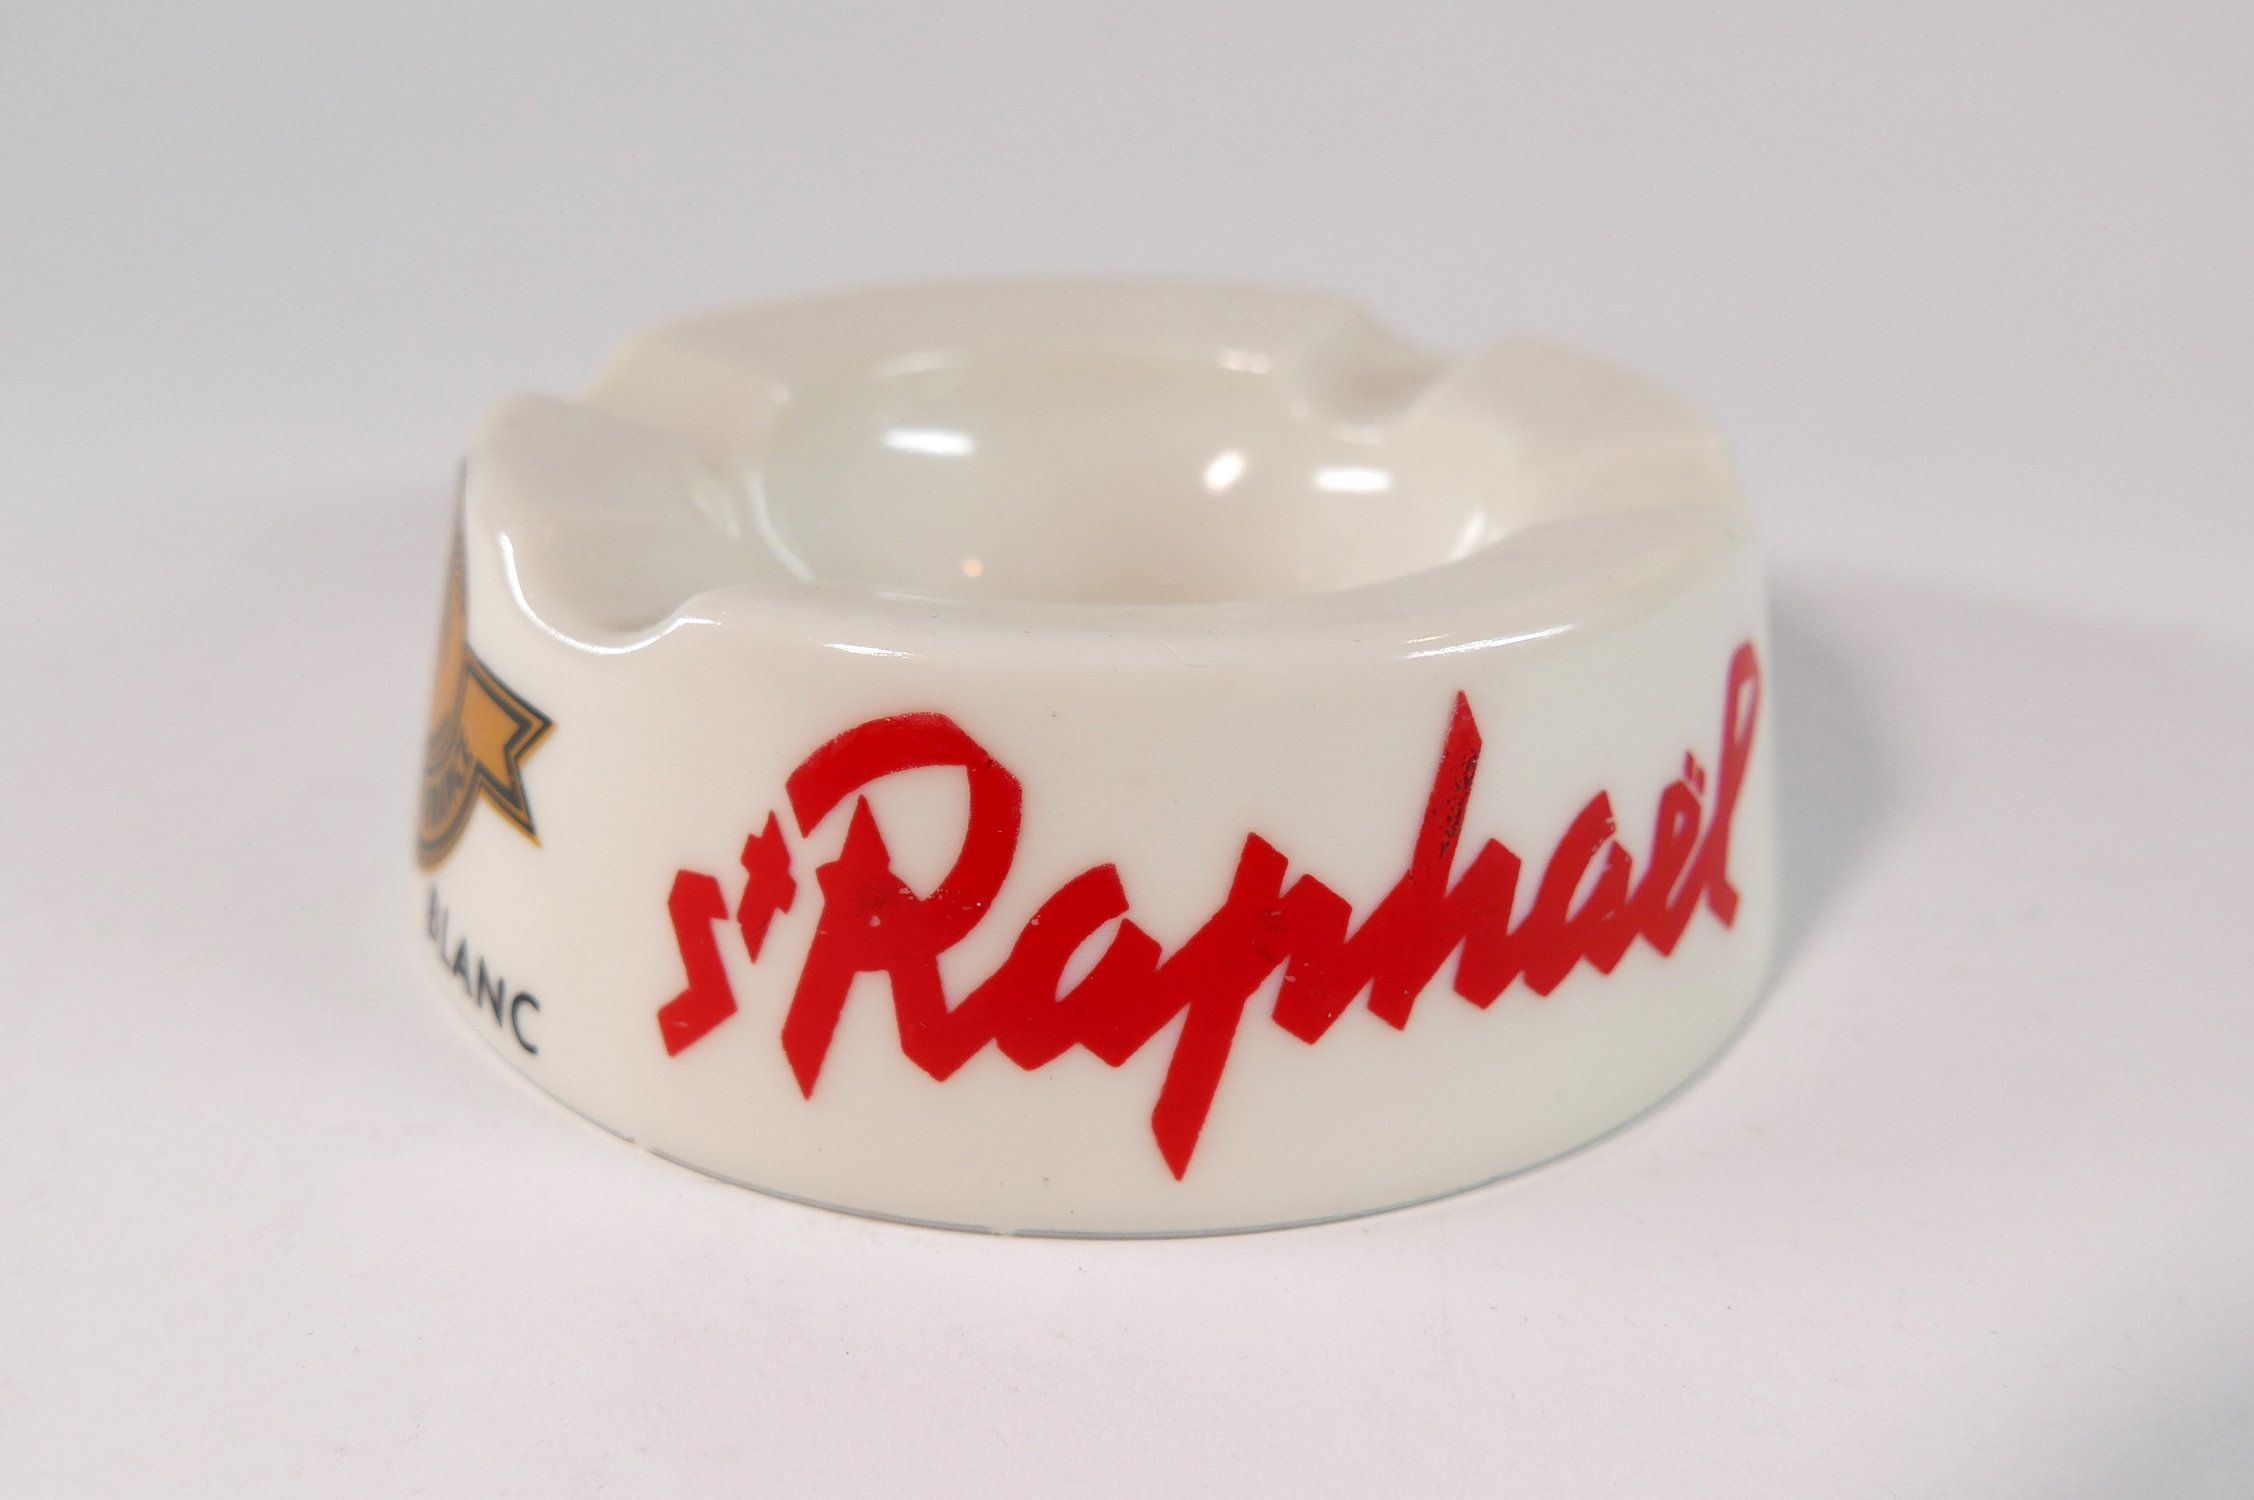 Vintage St Raphael Aperitif Opal Glass Advertising Ashtray Etsy In 2020 Aperitif Alcoholic Drinks Vintage